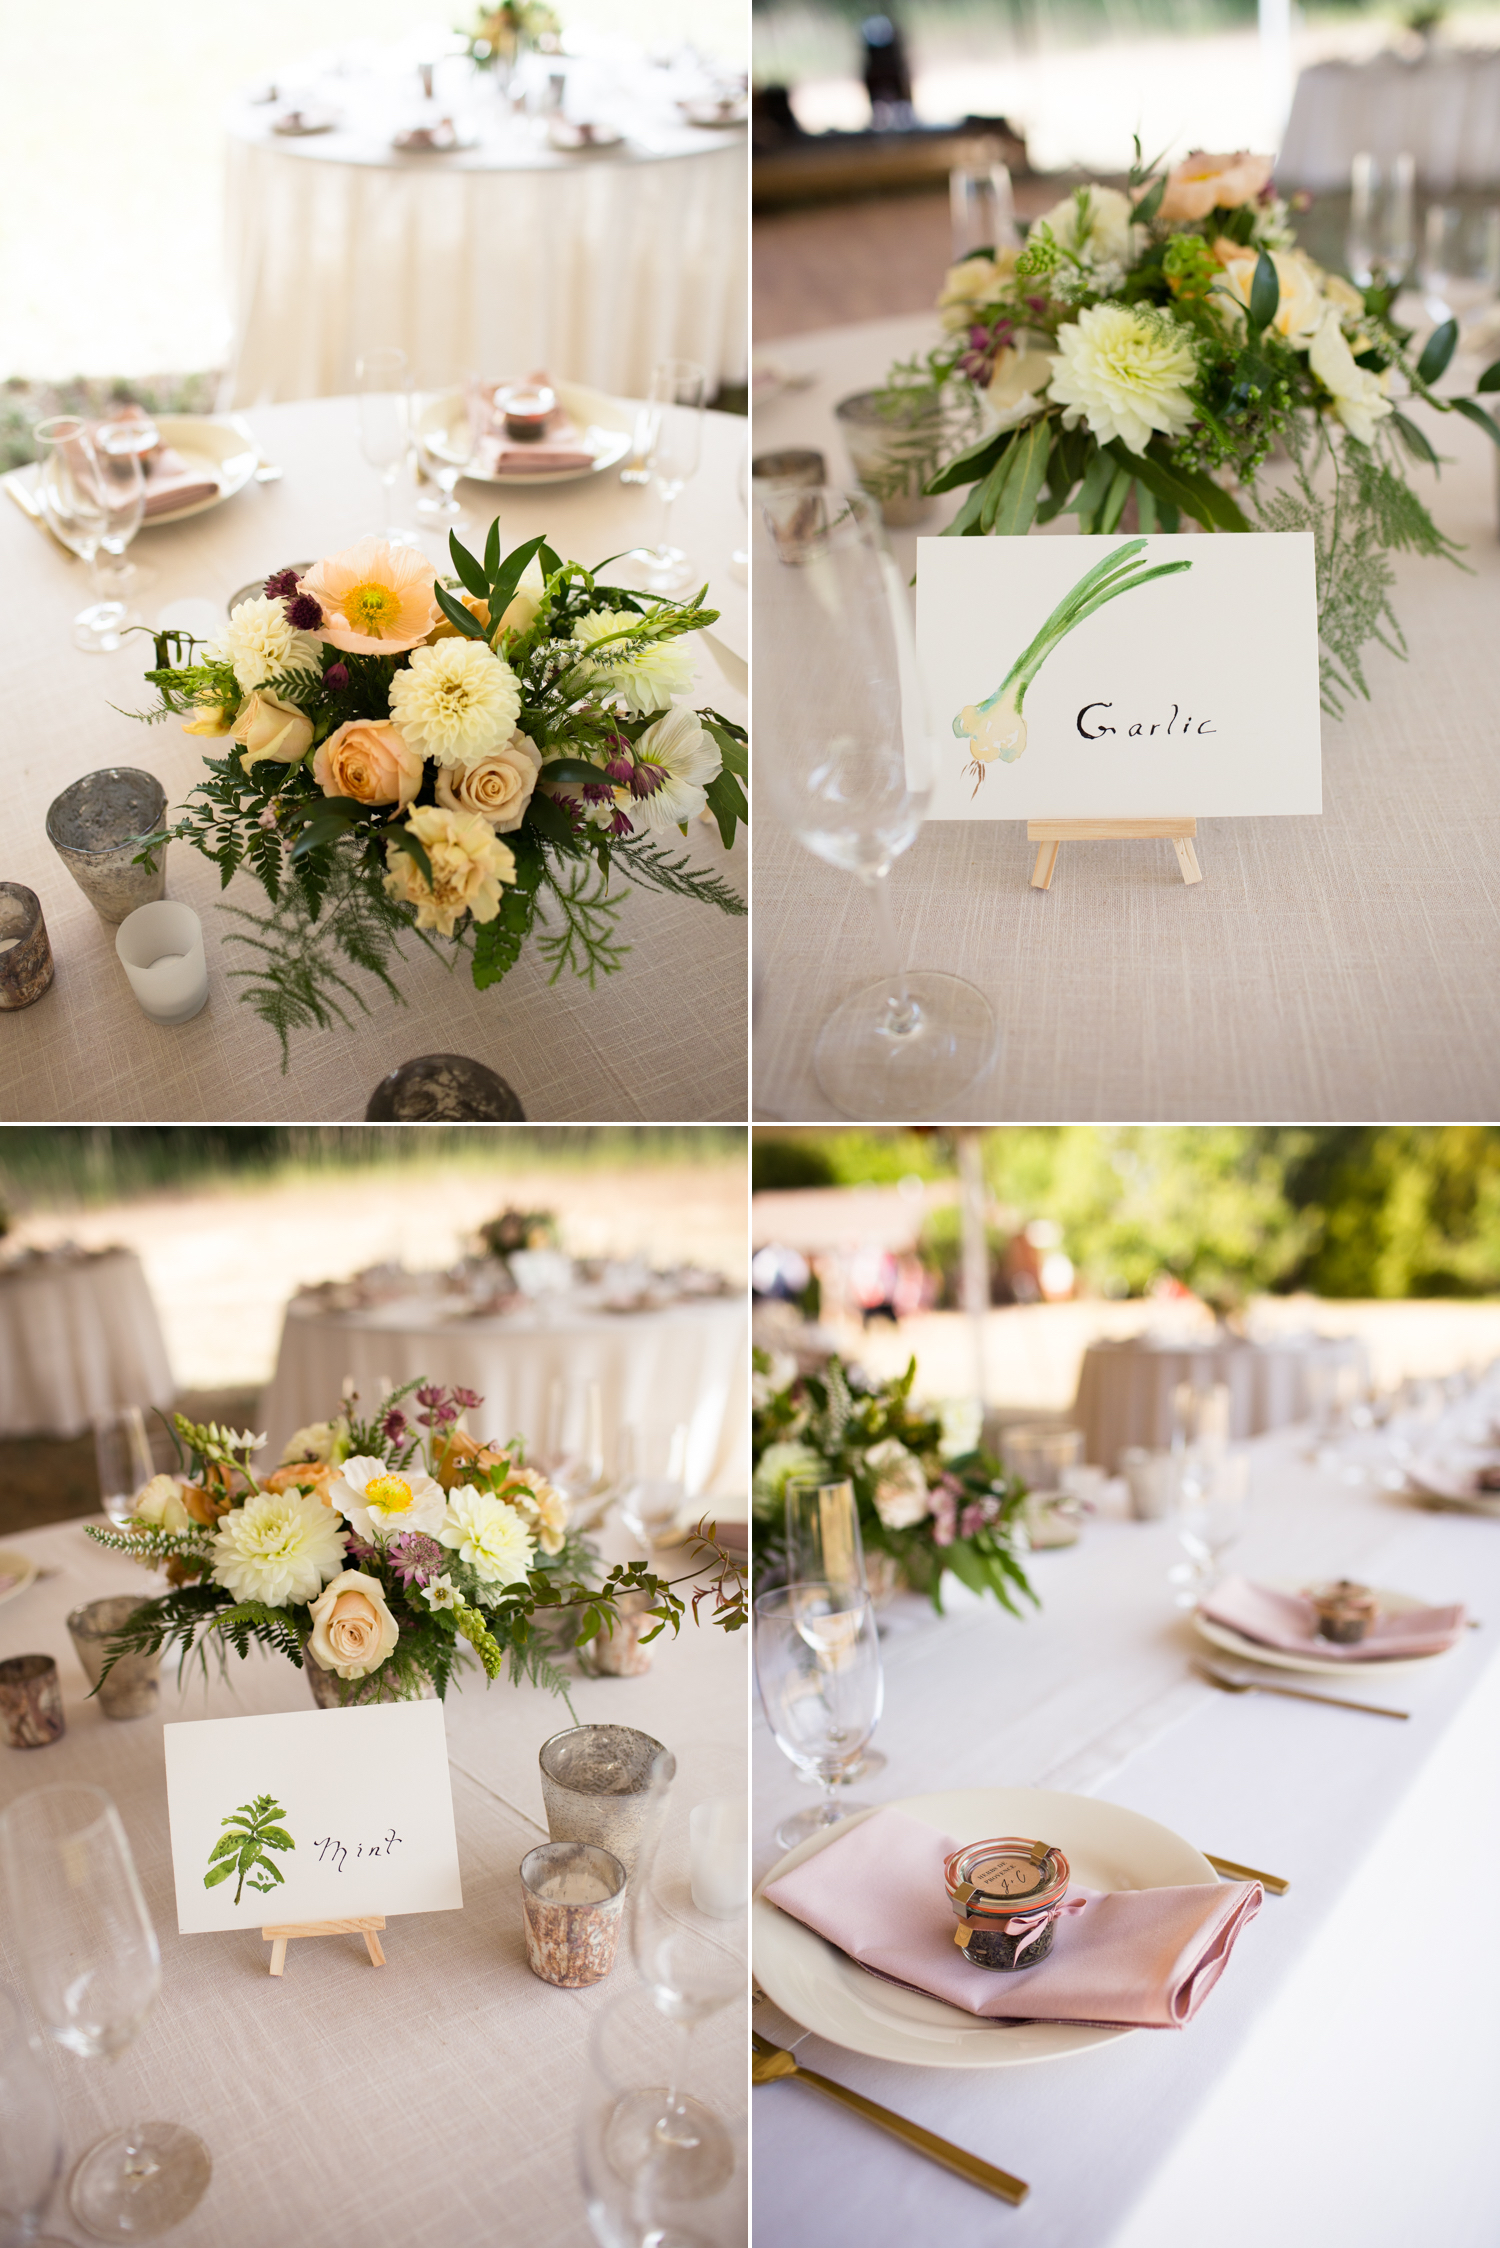 event photography nevada county